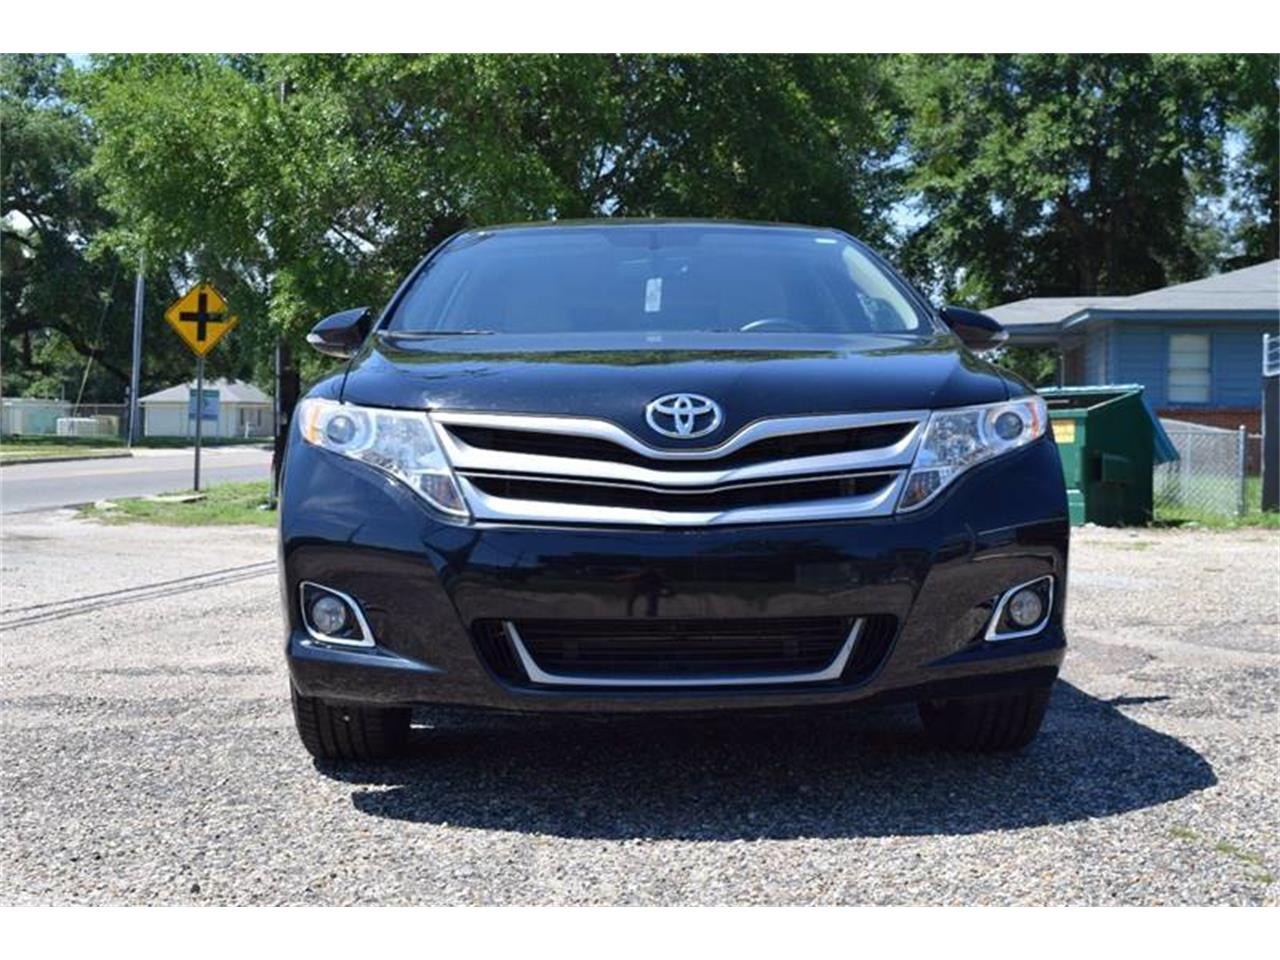 2014 Toyota Venza For Sale Cc 993629 Exterior Accessories Large Picture Of 14 Laot